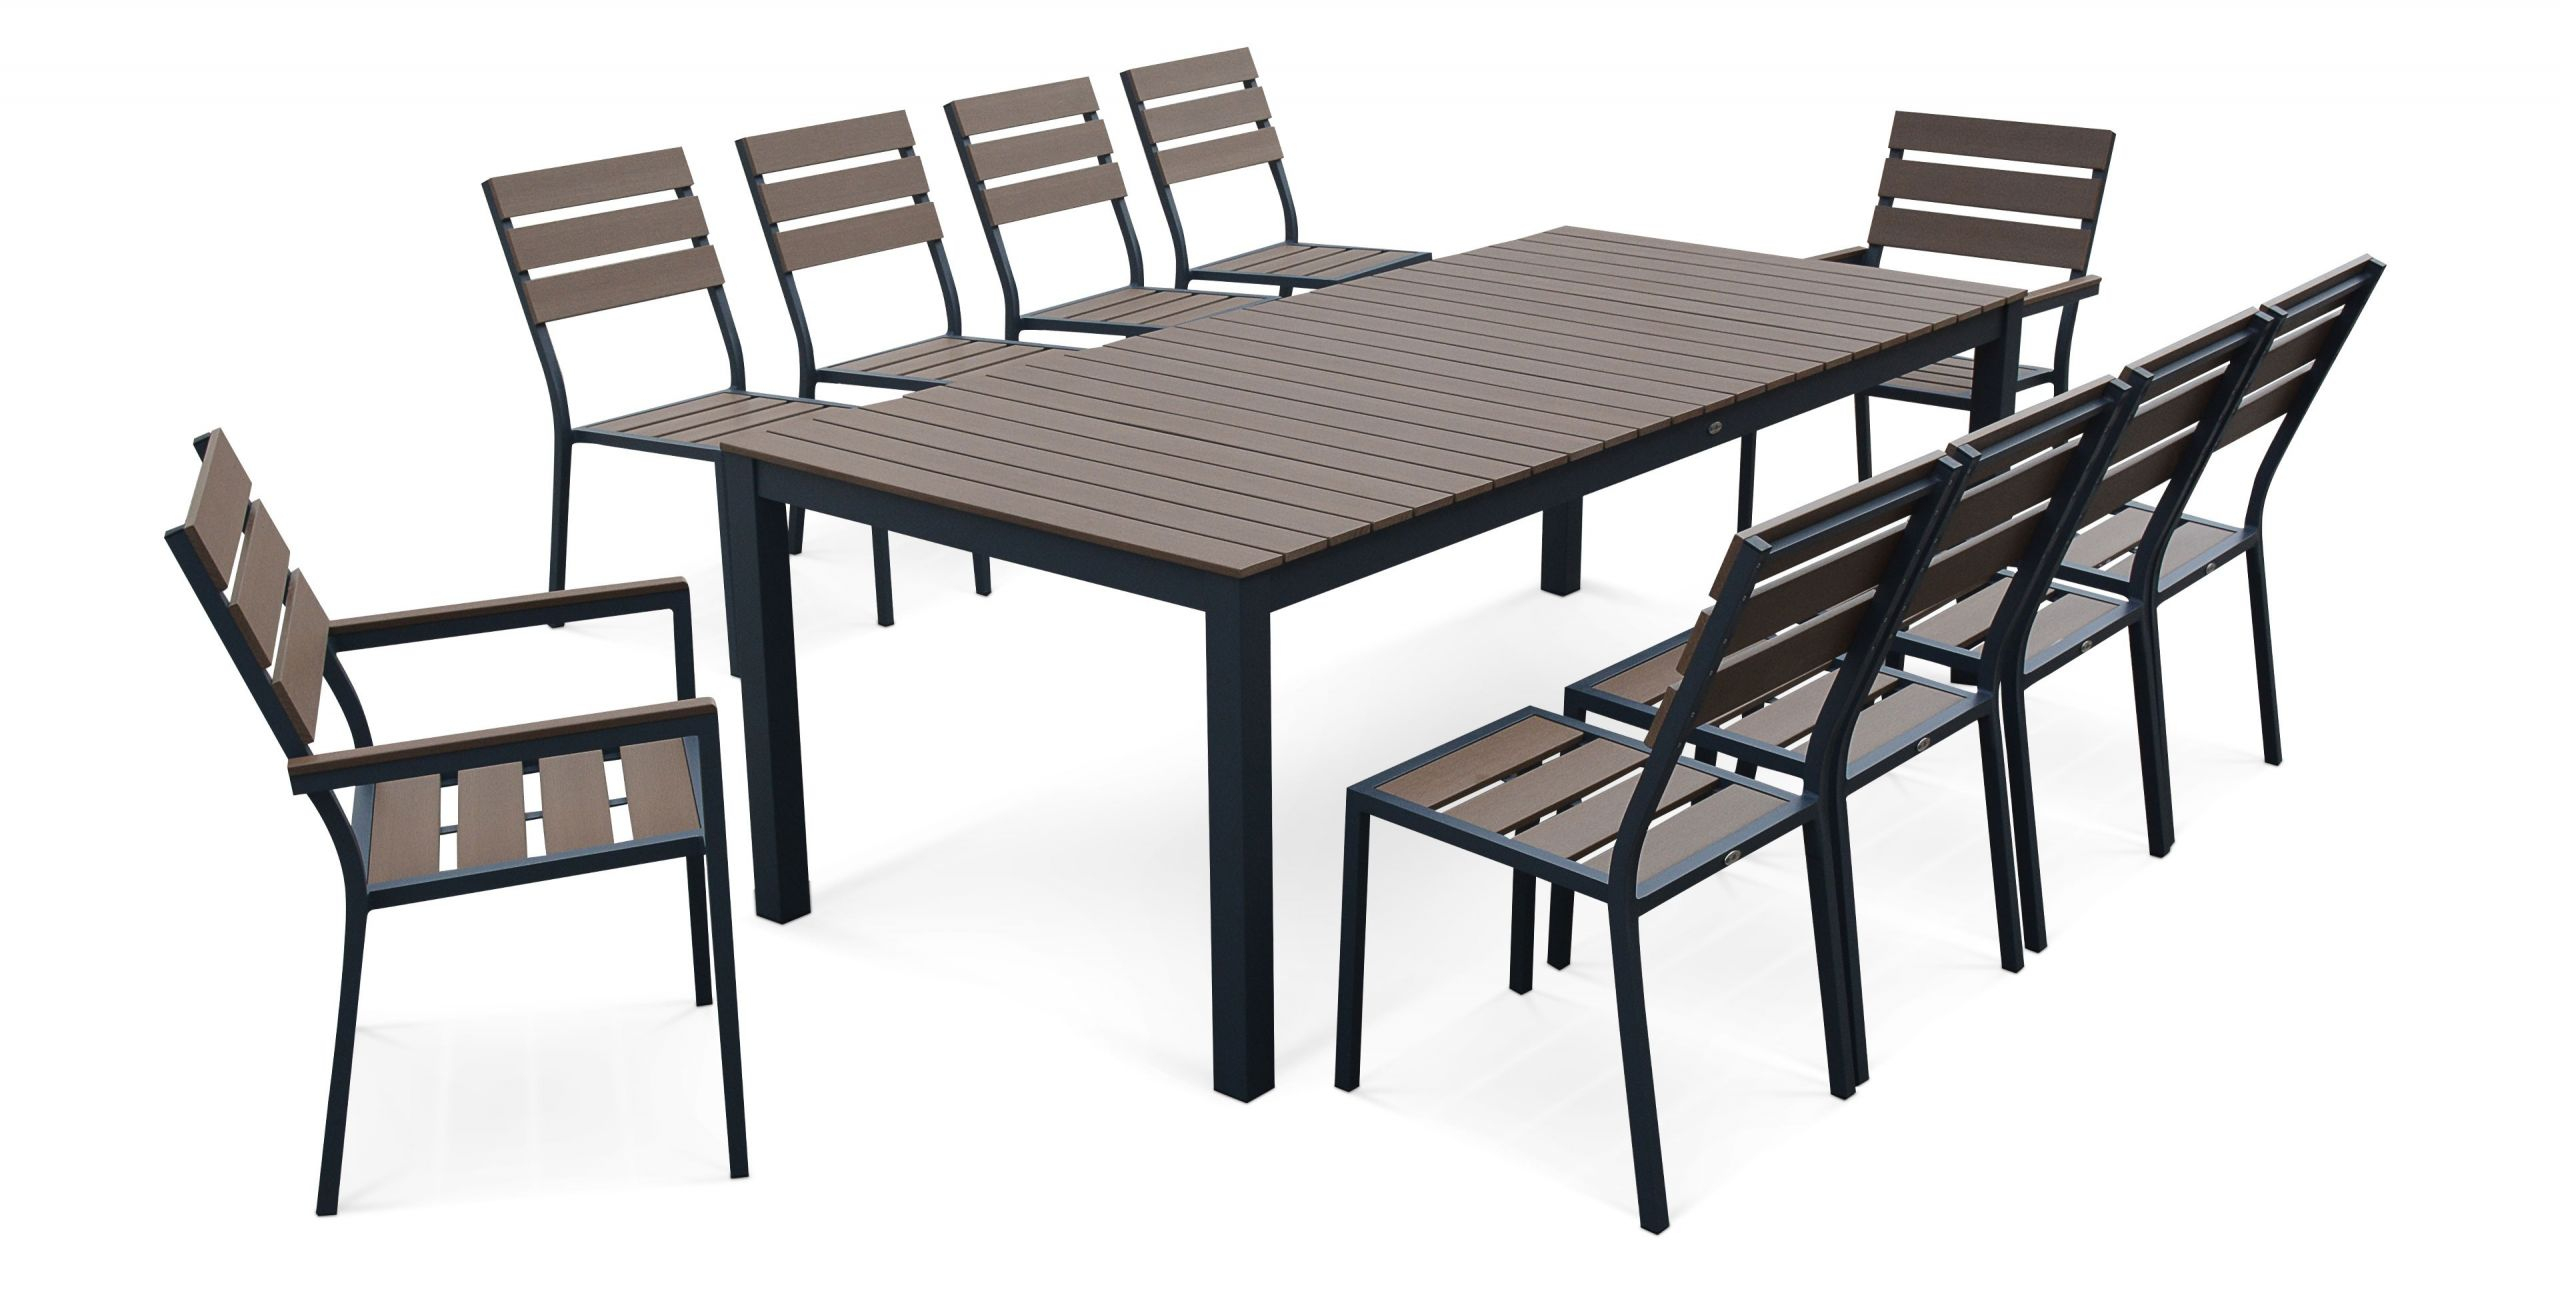 Table Chaise Jardin Pas Cher Conception - Idees Conception ... intérieur Table Et Chaises De Jardin Pas Cher